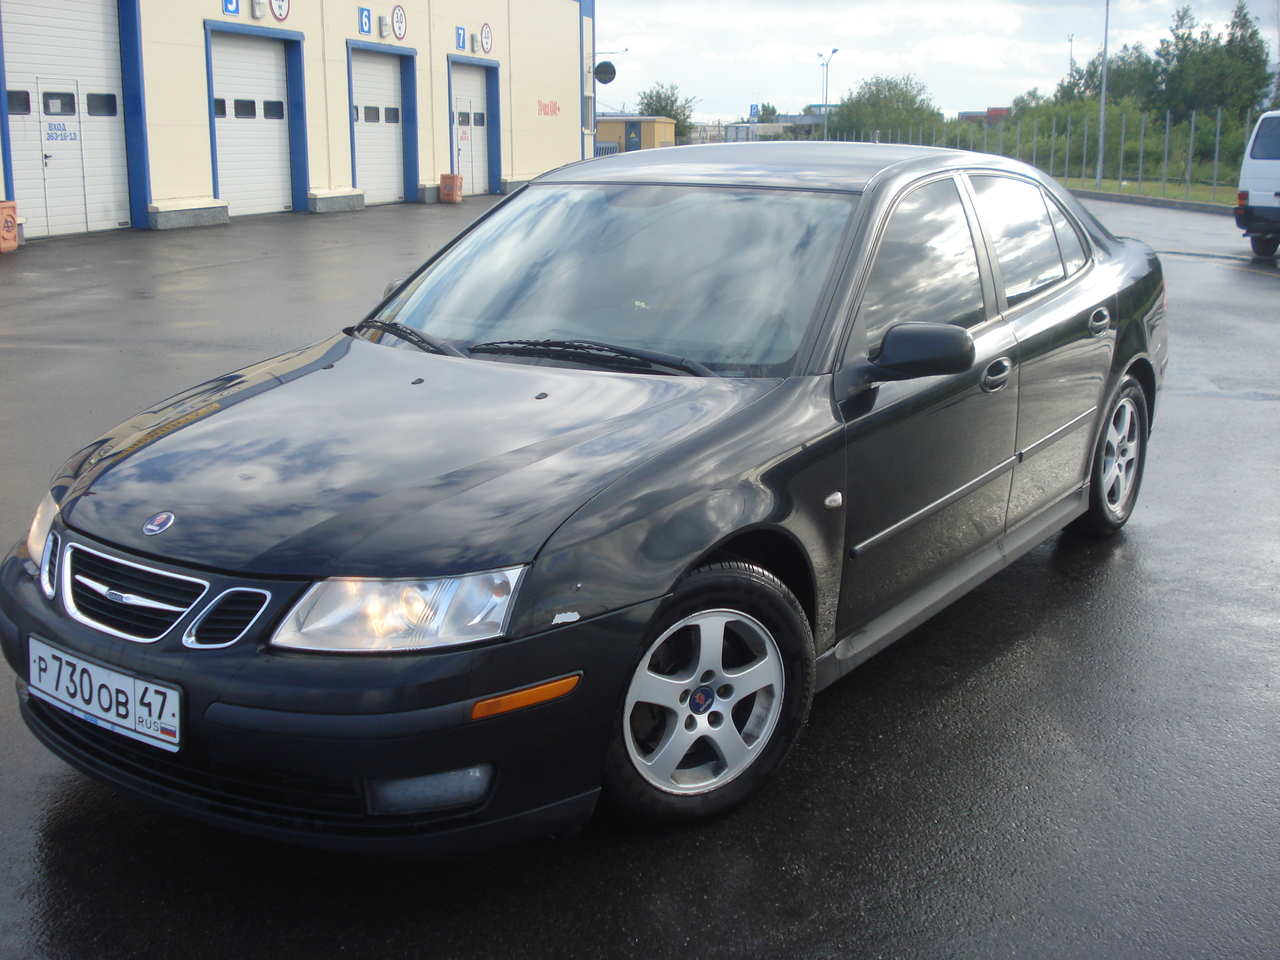 2003 saab 9 3 images gasoline ff automatic for sale. Black Bedroom Furniture Sets. Home Design Ideas